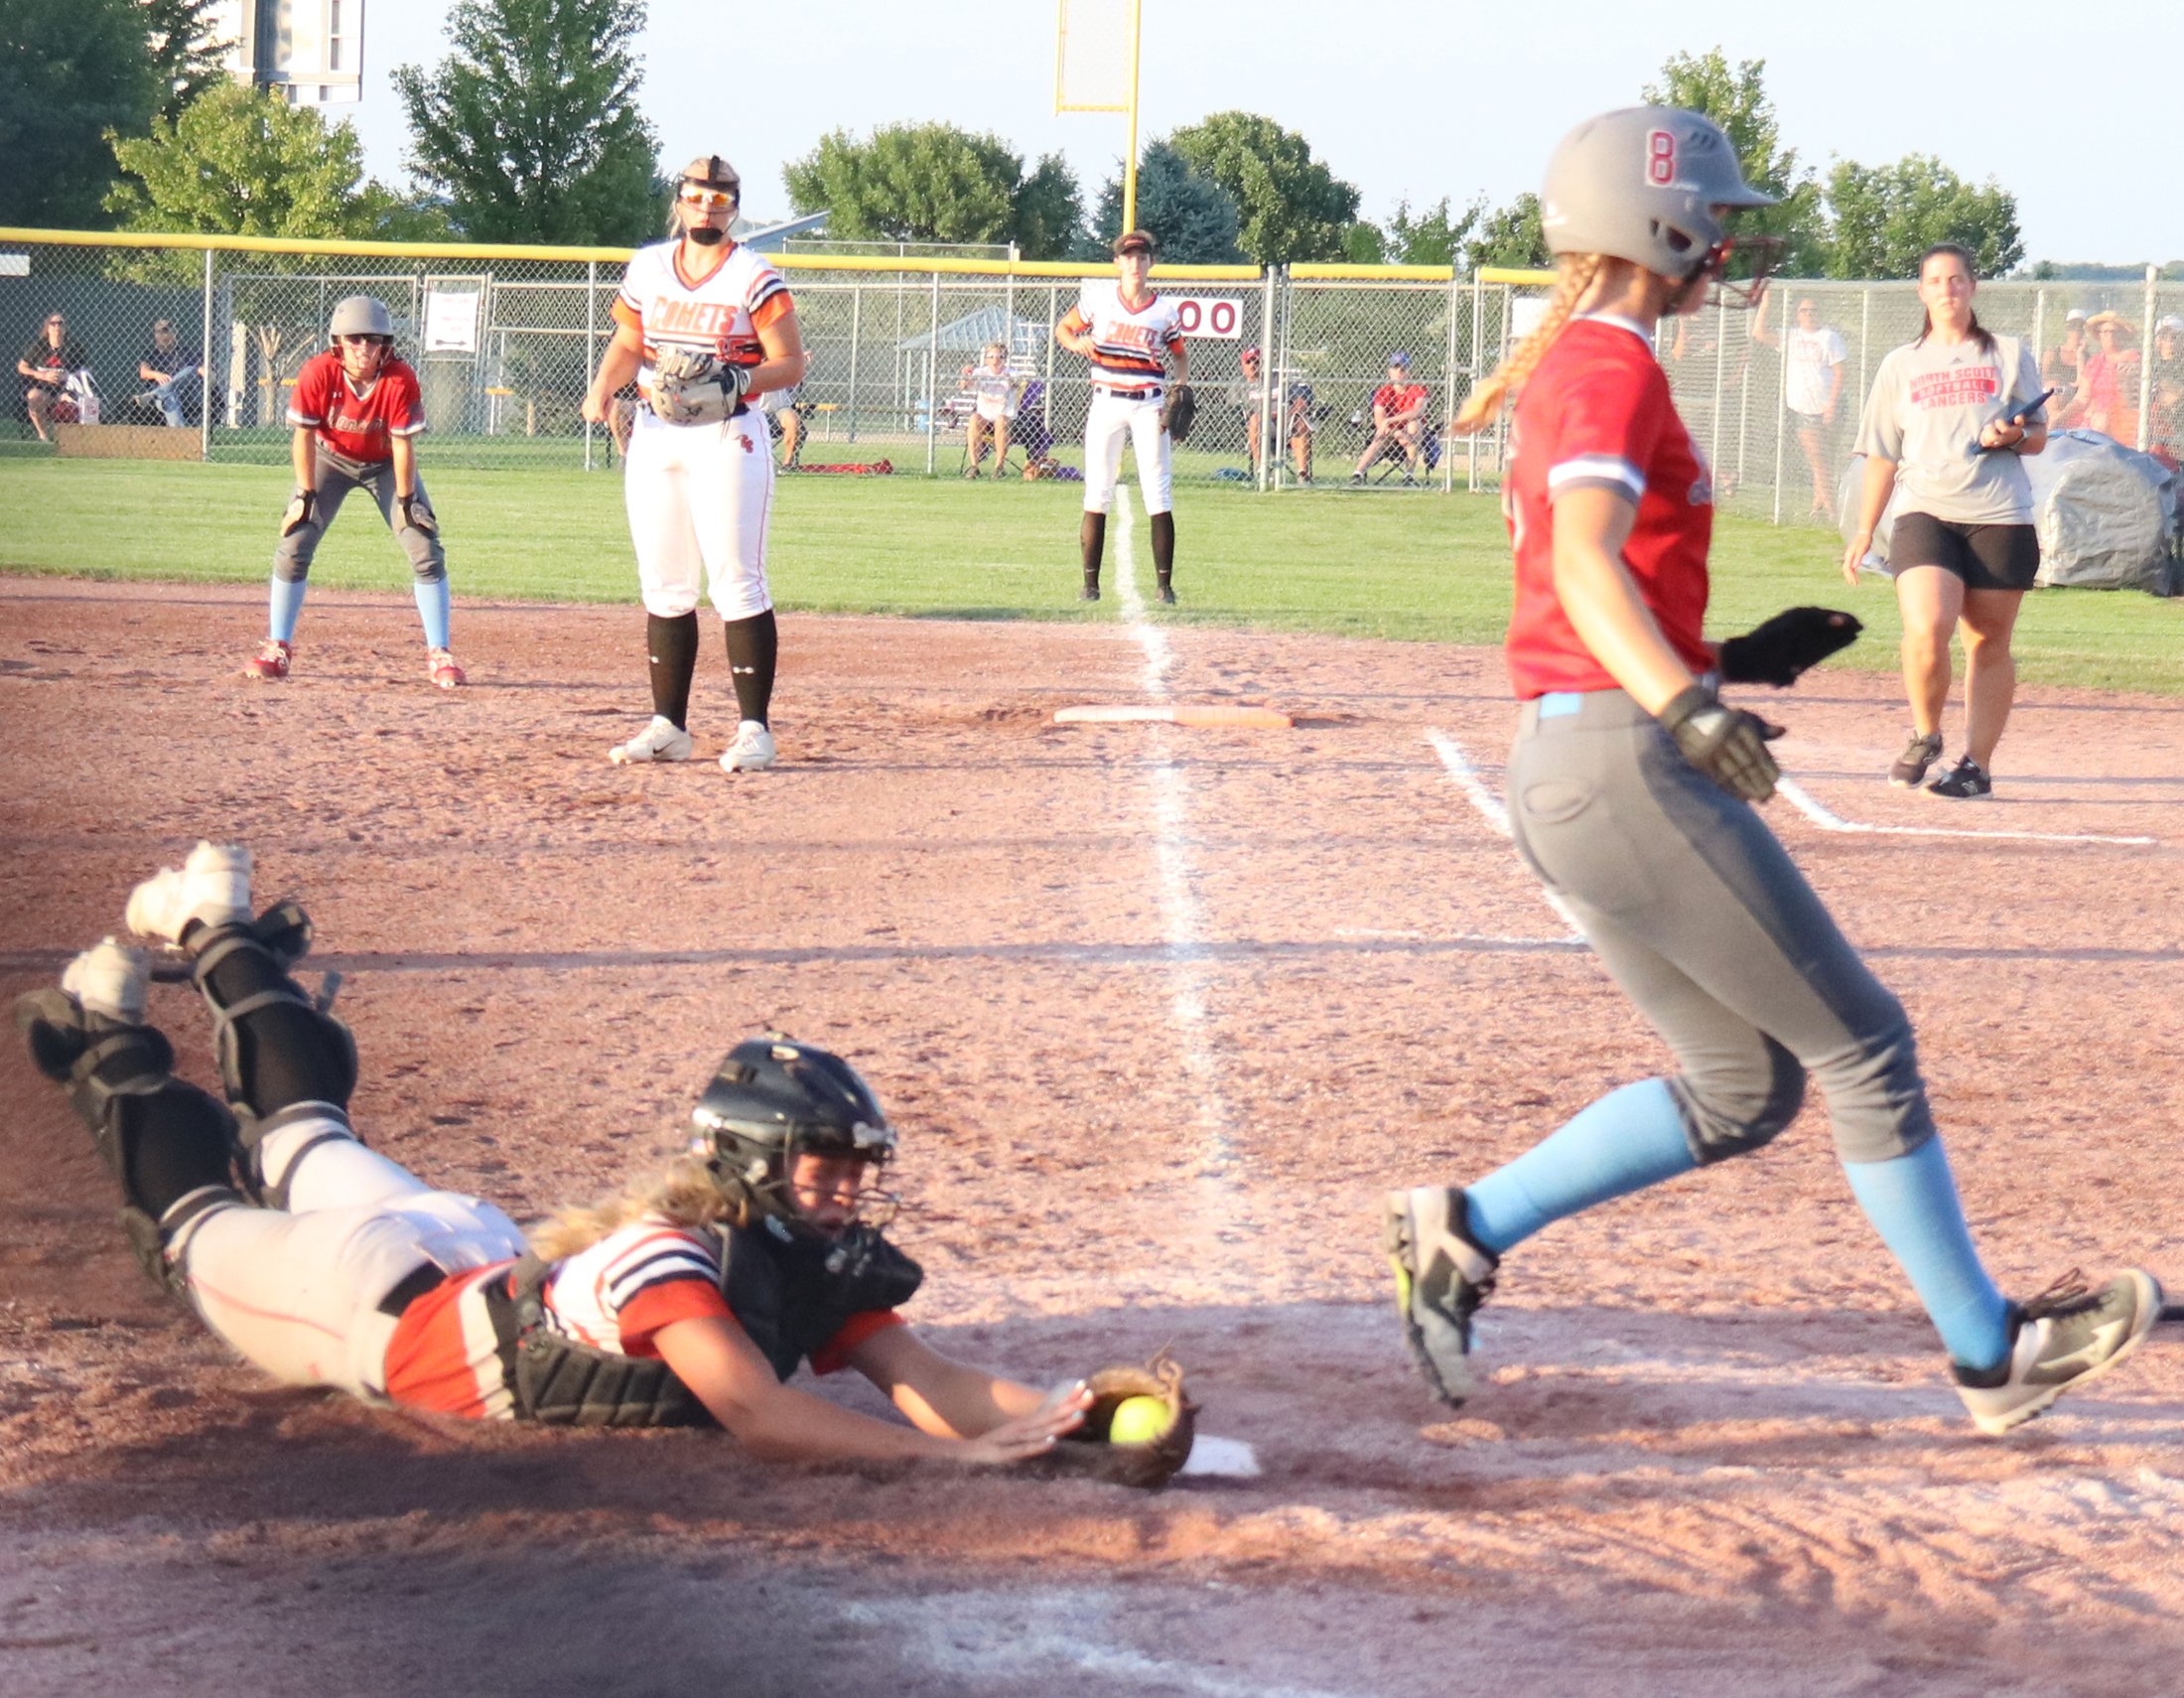 One out shy of reaching championship game, Comets fall to Lancers in extra innings